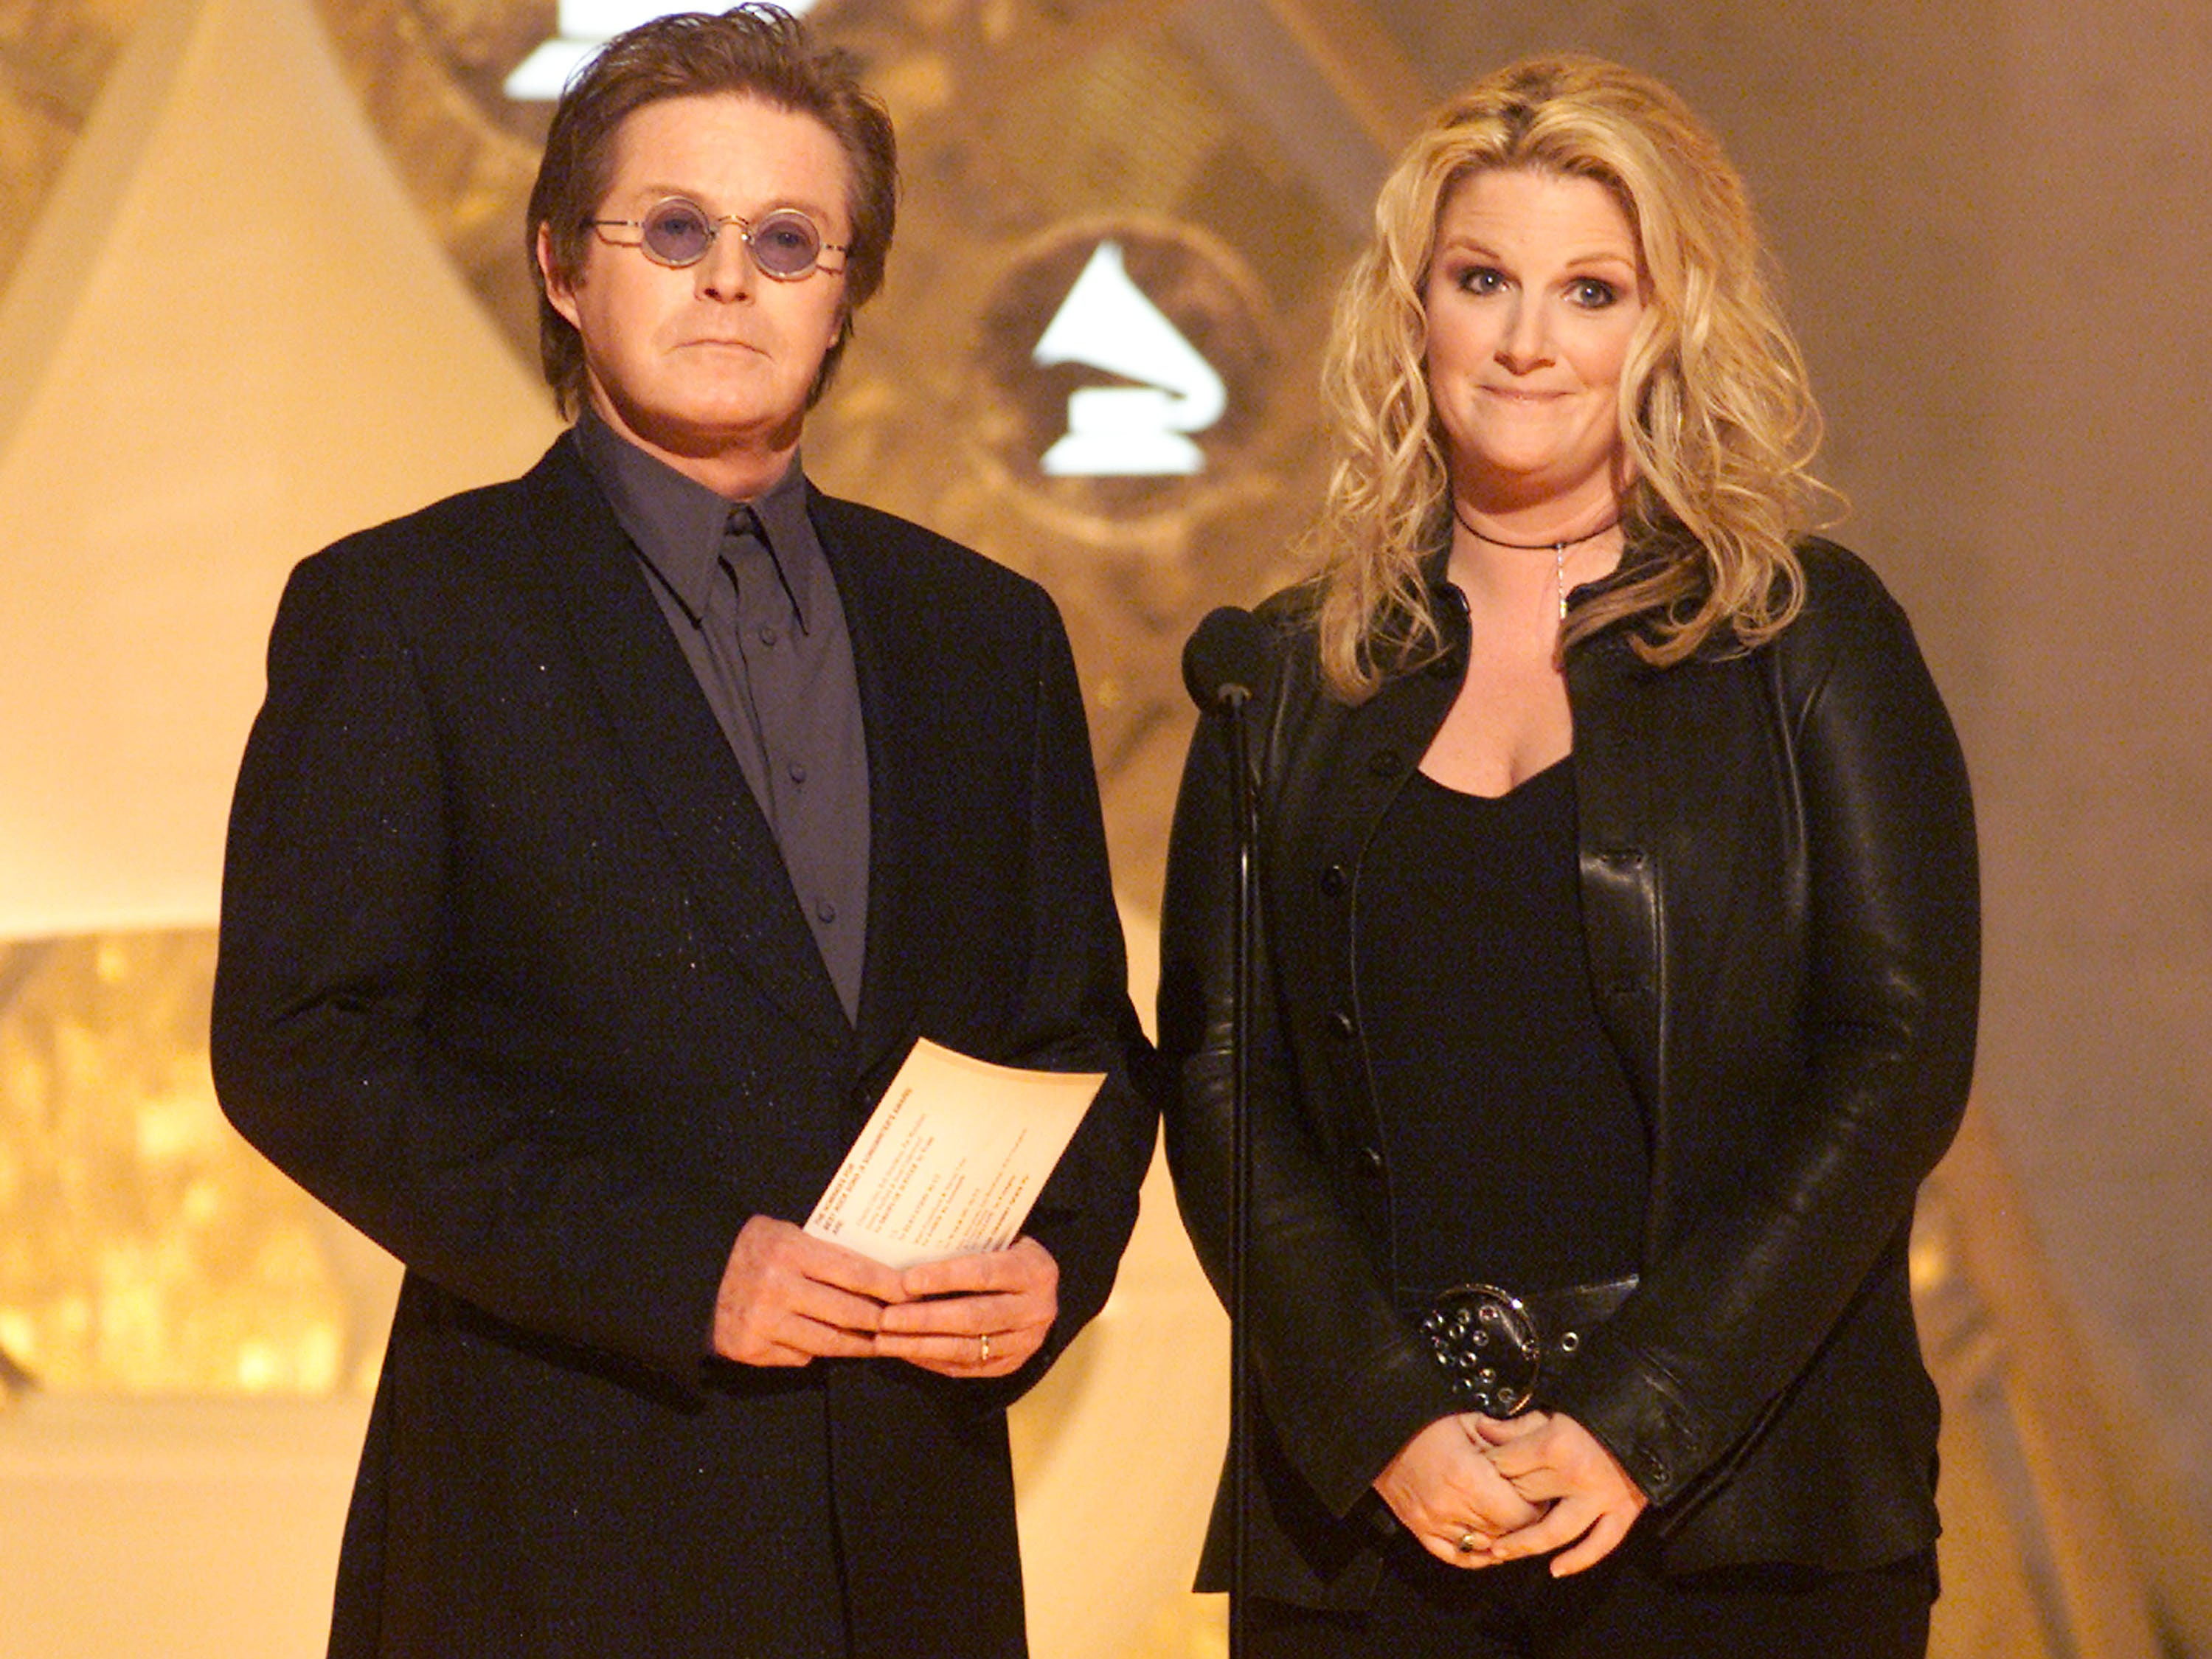 Don Henley and Trisha Yearwood at the 44th Annual Grammy Awards held at the Staples Center In Los Angeles, Ca. Feb. 27, 2002.